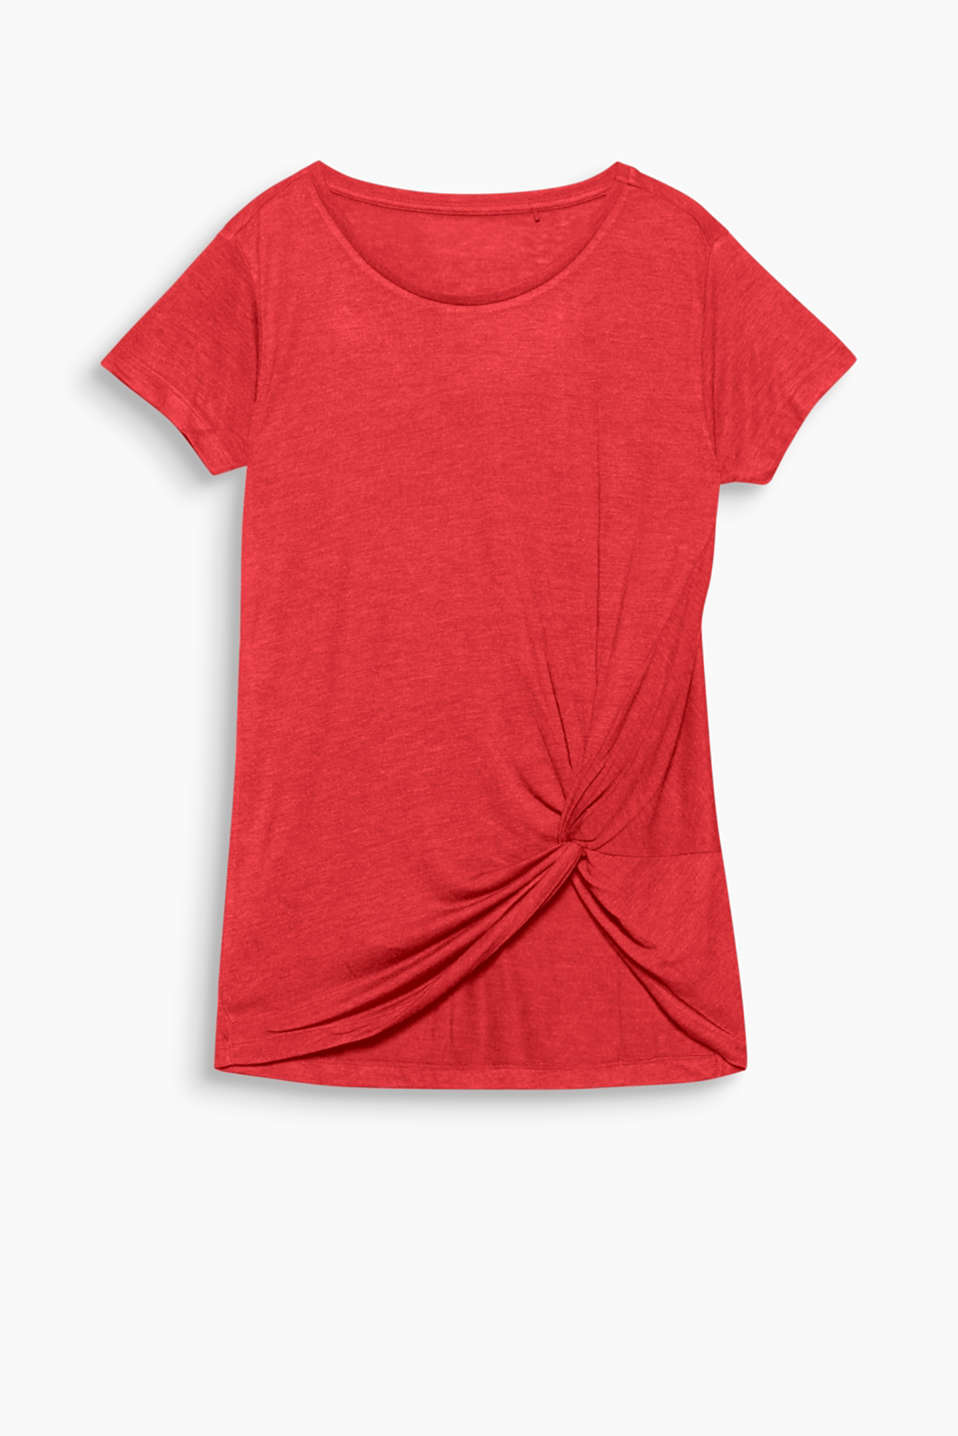 Feminine wellness: Now casual tops feature details like decorative knot effects!